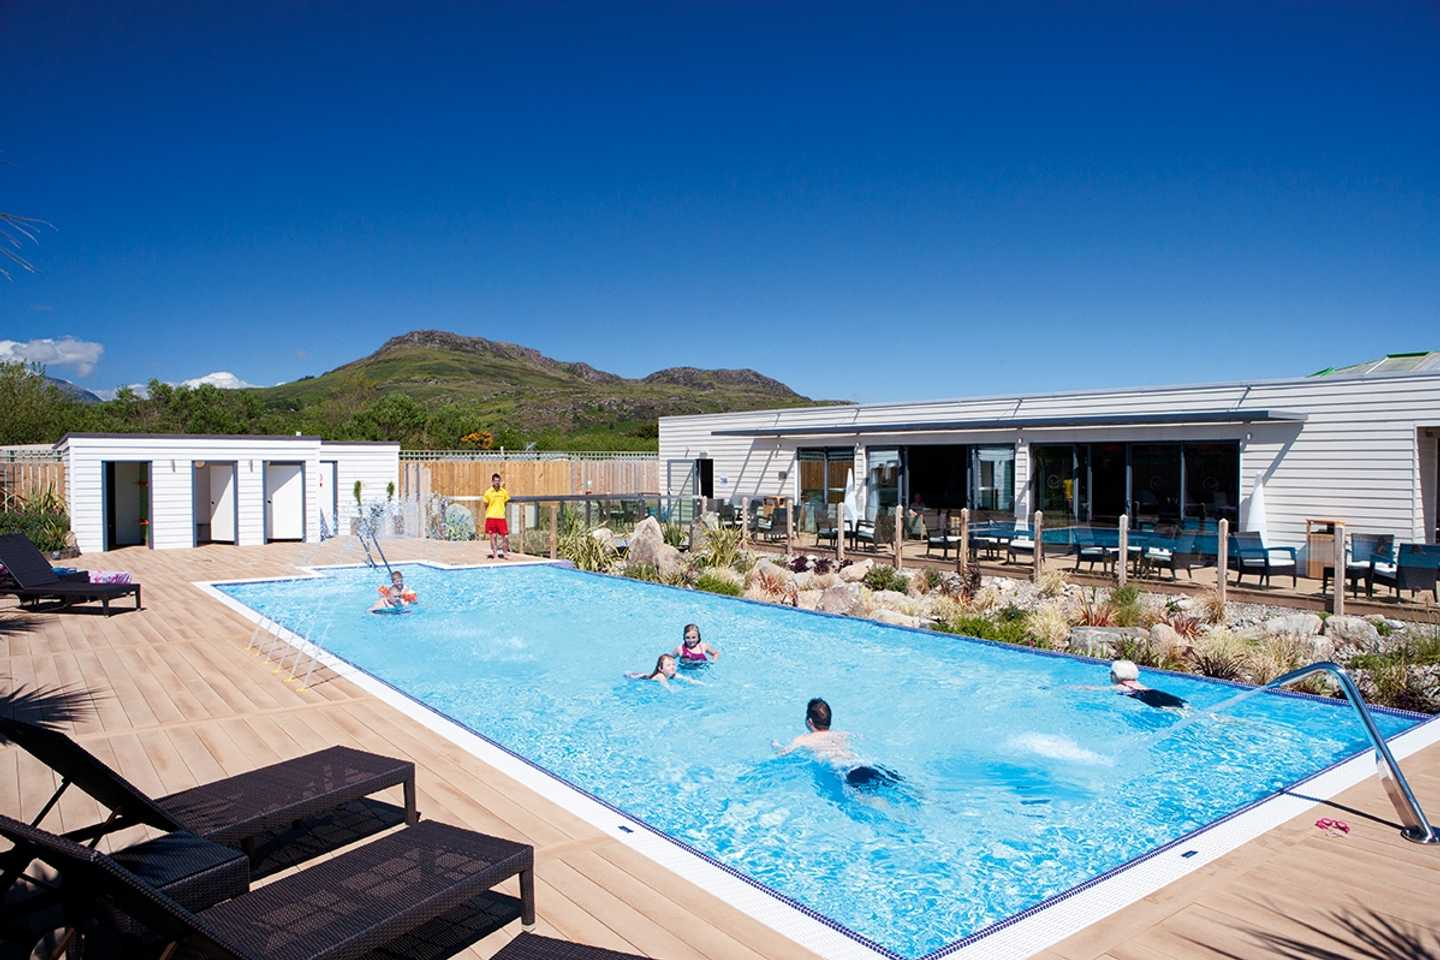 Outdoor pool exclusive for owners at Greenacres